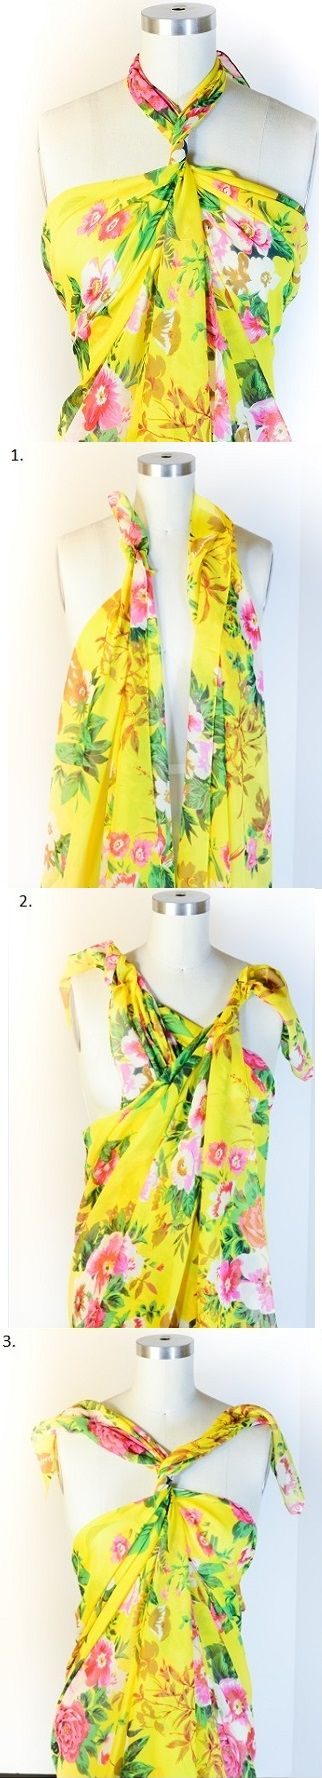 How to Make a Scarf Halter Top – DIY  My other favorite way to wear a sarong/pareo/scarf